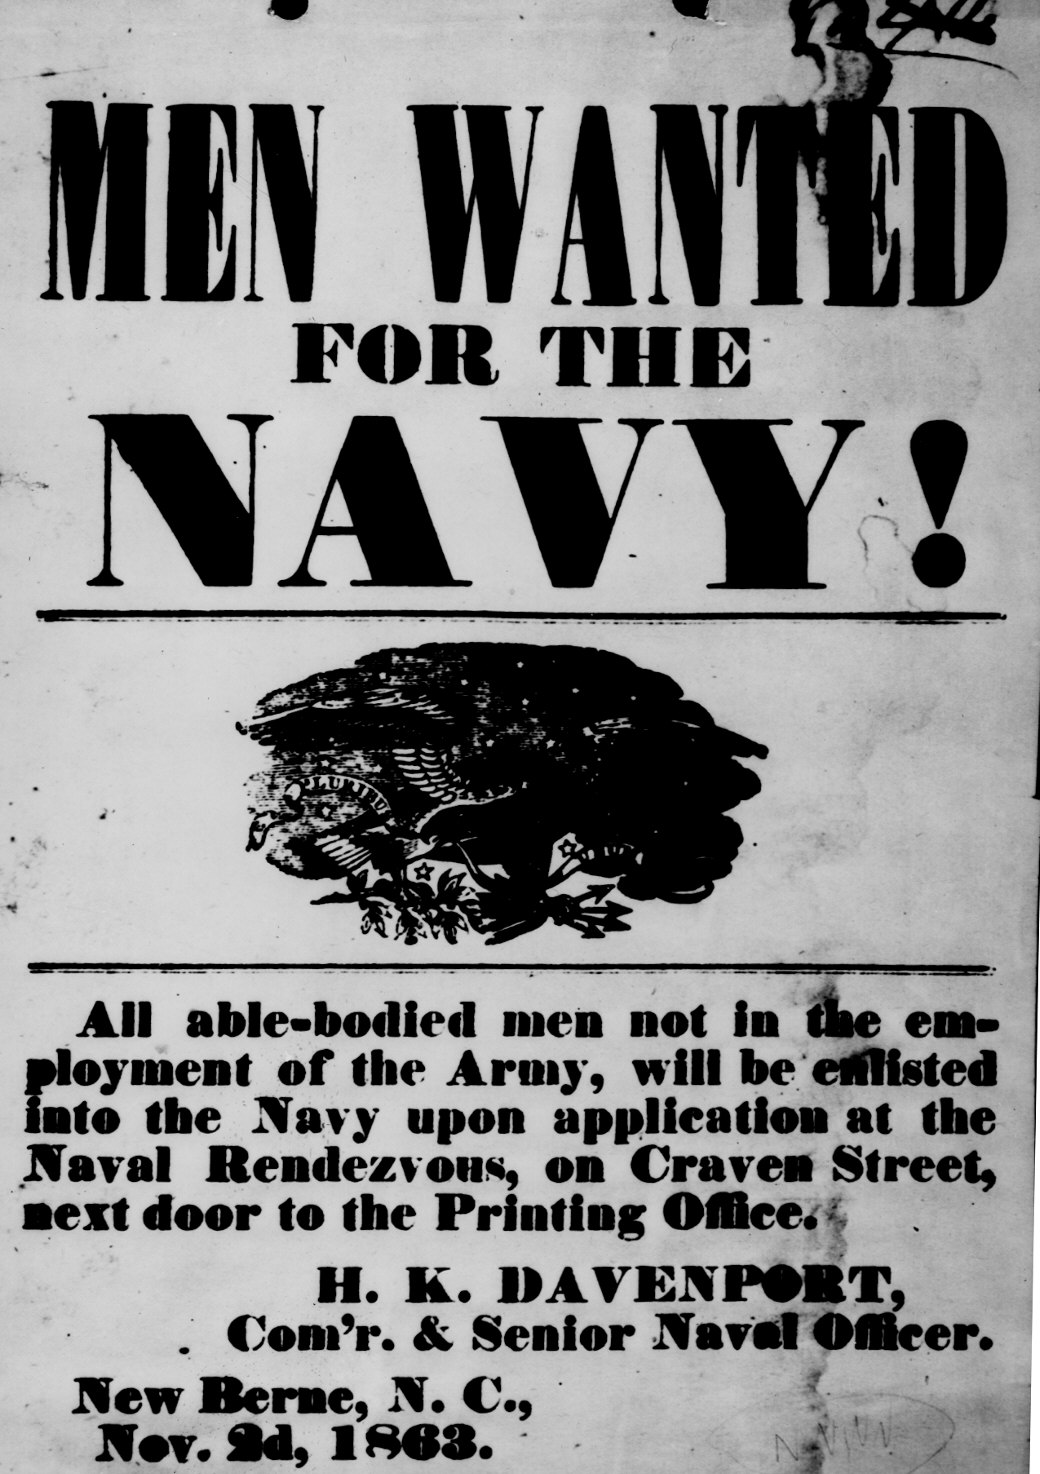 Civil war photos national archives men wanted for the navy thecheapjerseys Choice Image